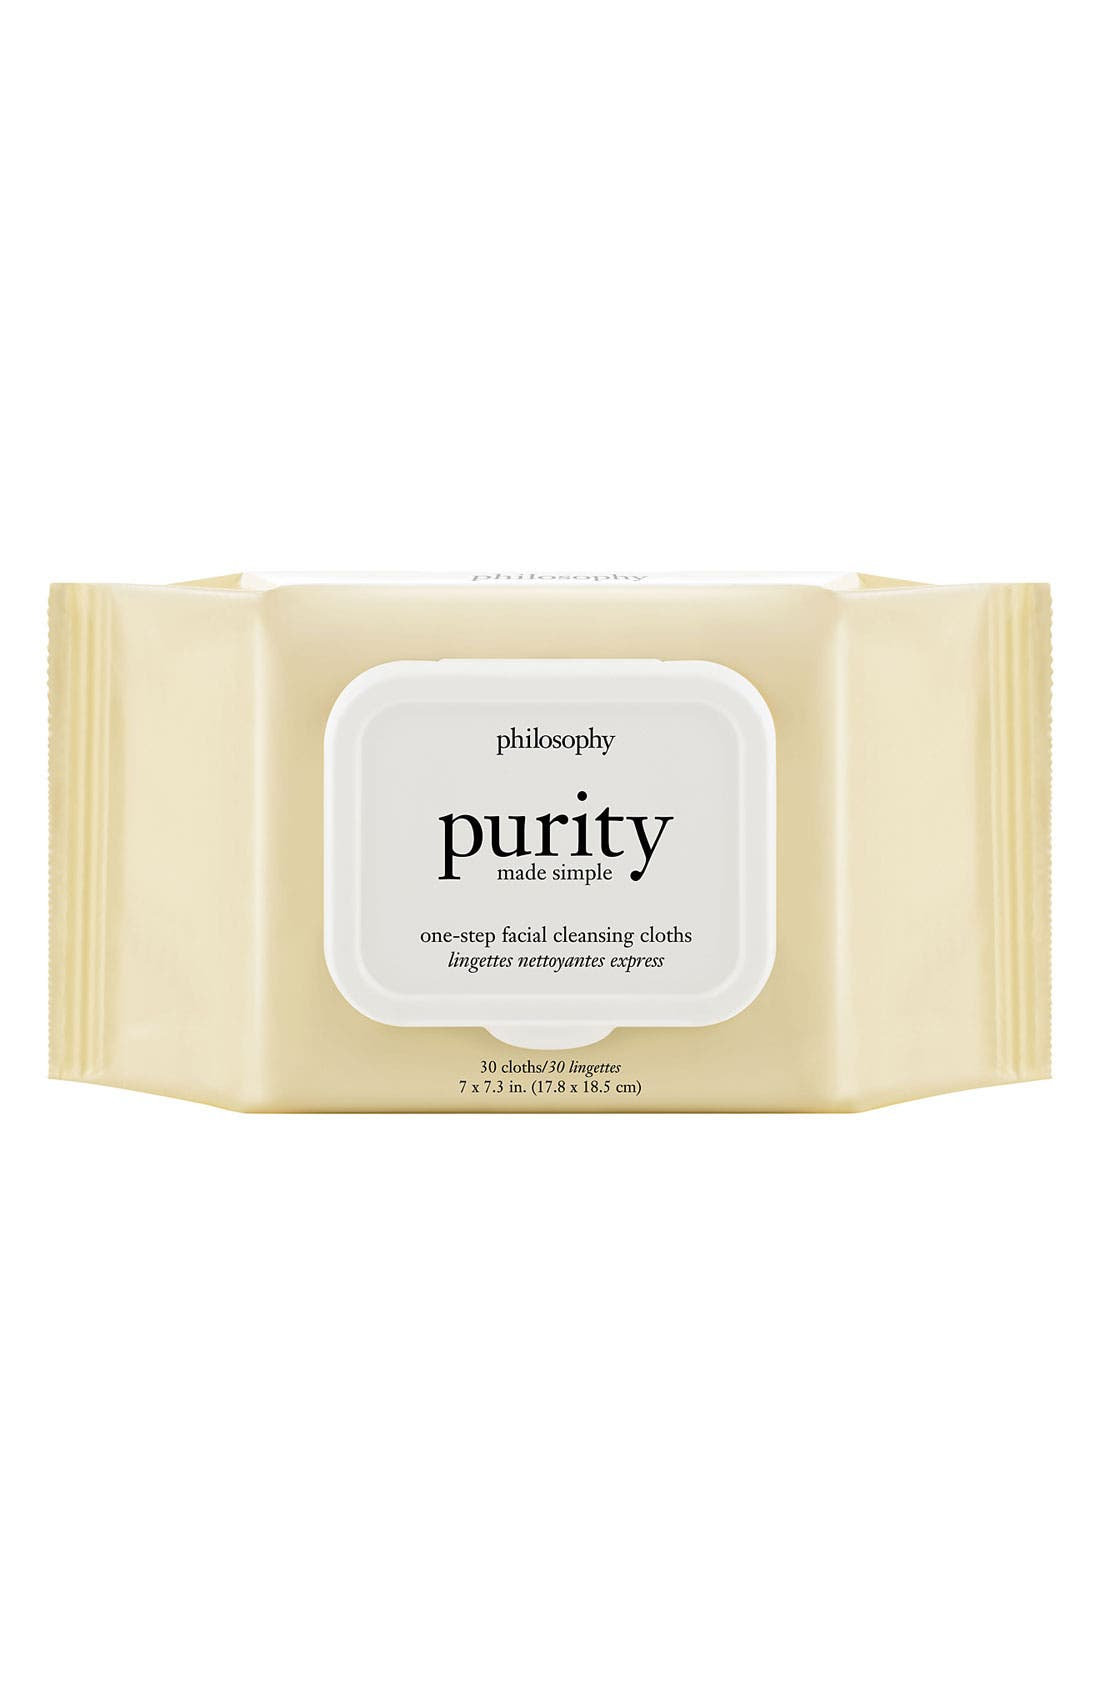 'purity made simple' one-step facial cleansing cloths,                             Main thumbnail 1, color,                             NO COLOR